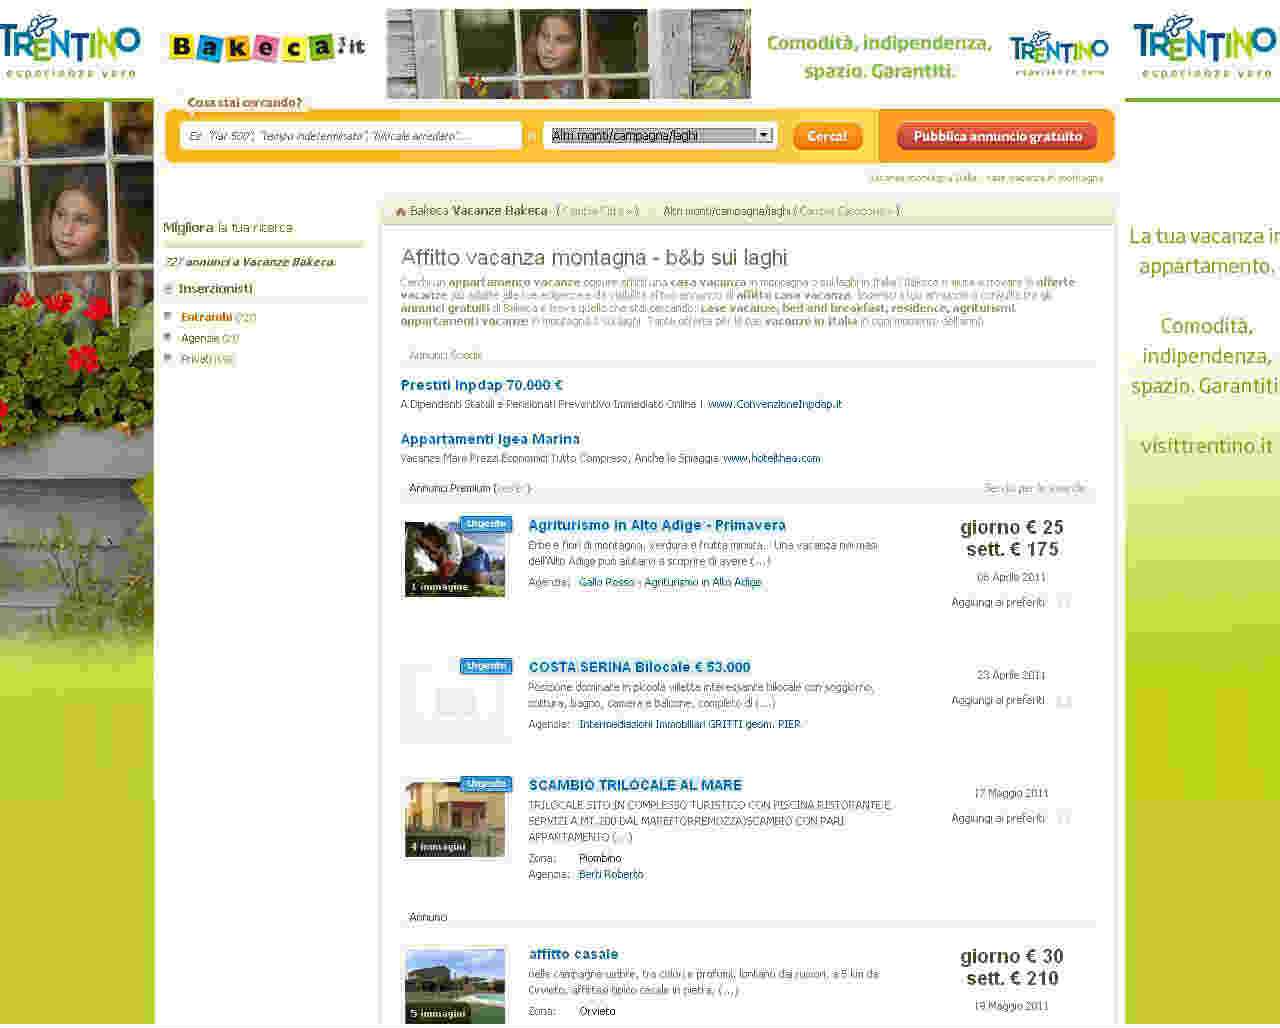 campagna-display-advertising-vacanze-account-centri-media-torino